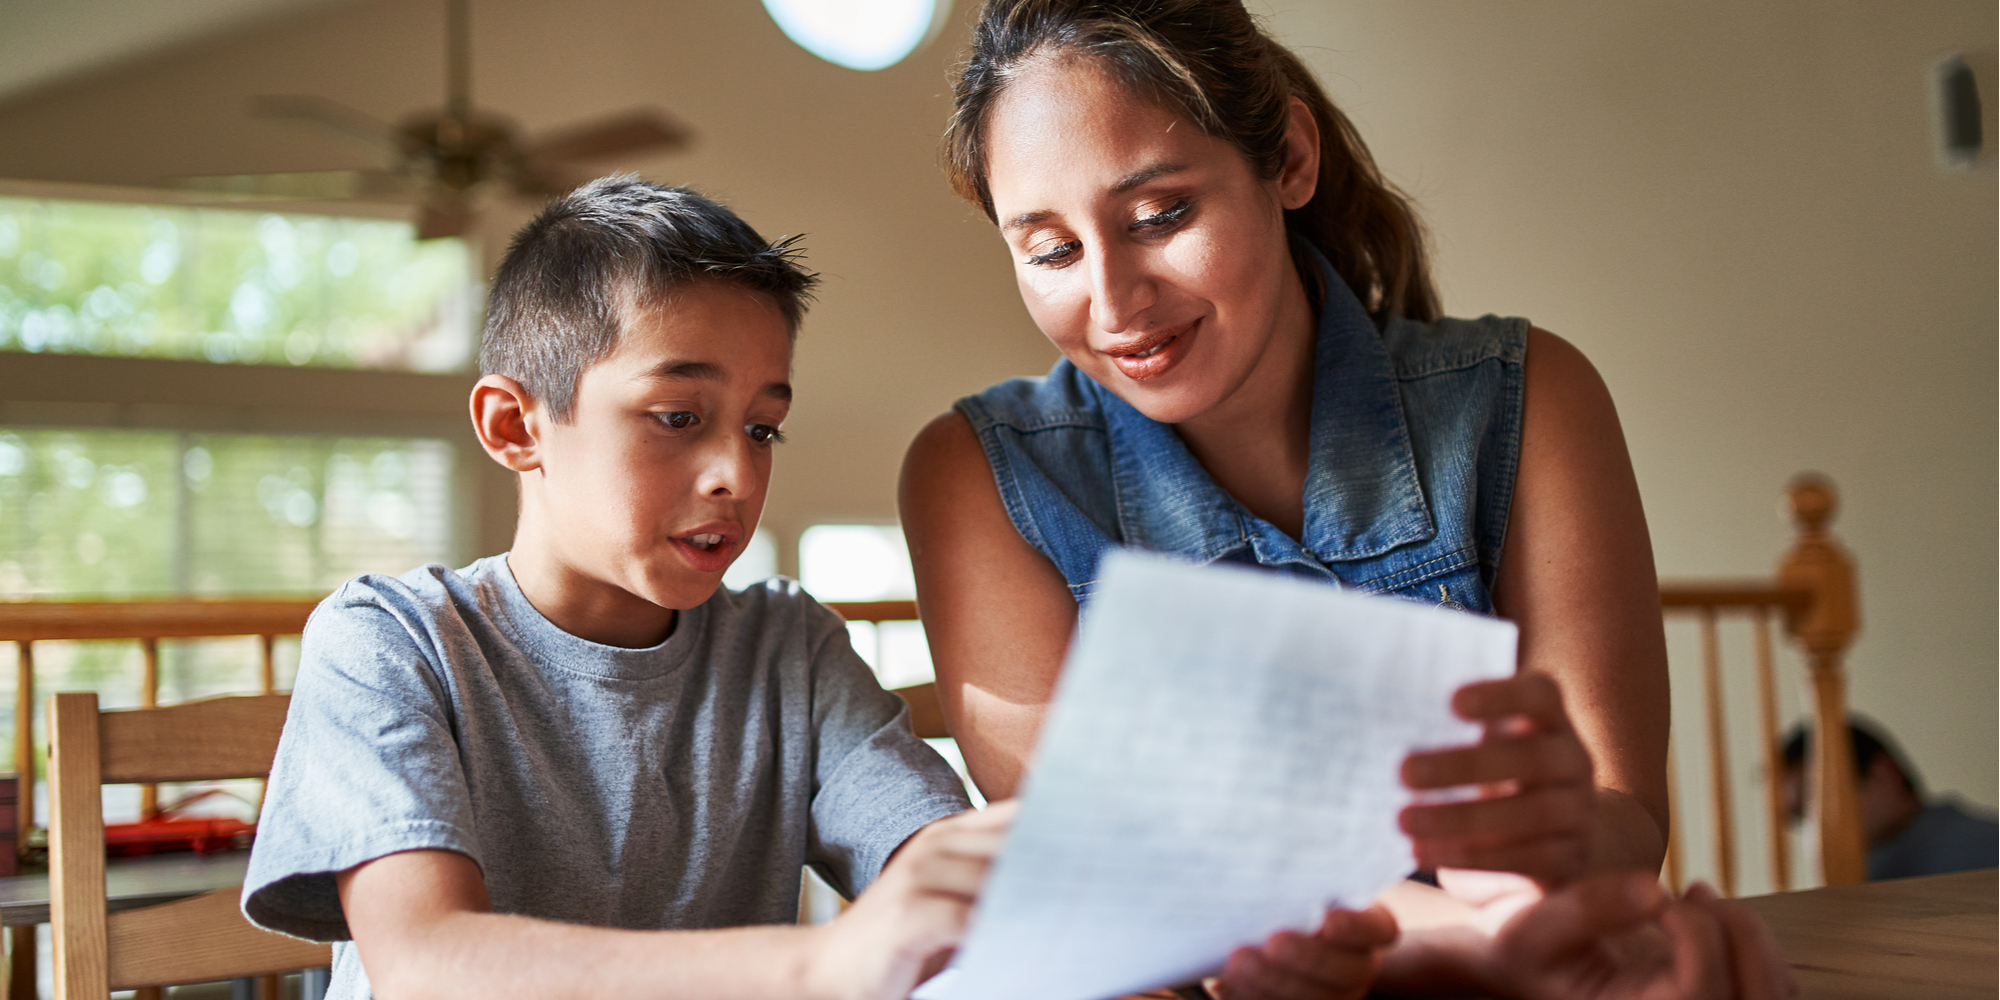 Personal Finance for Kids